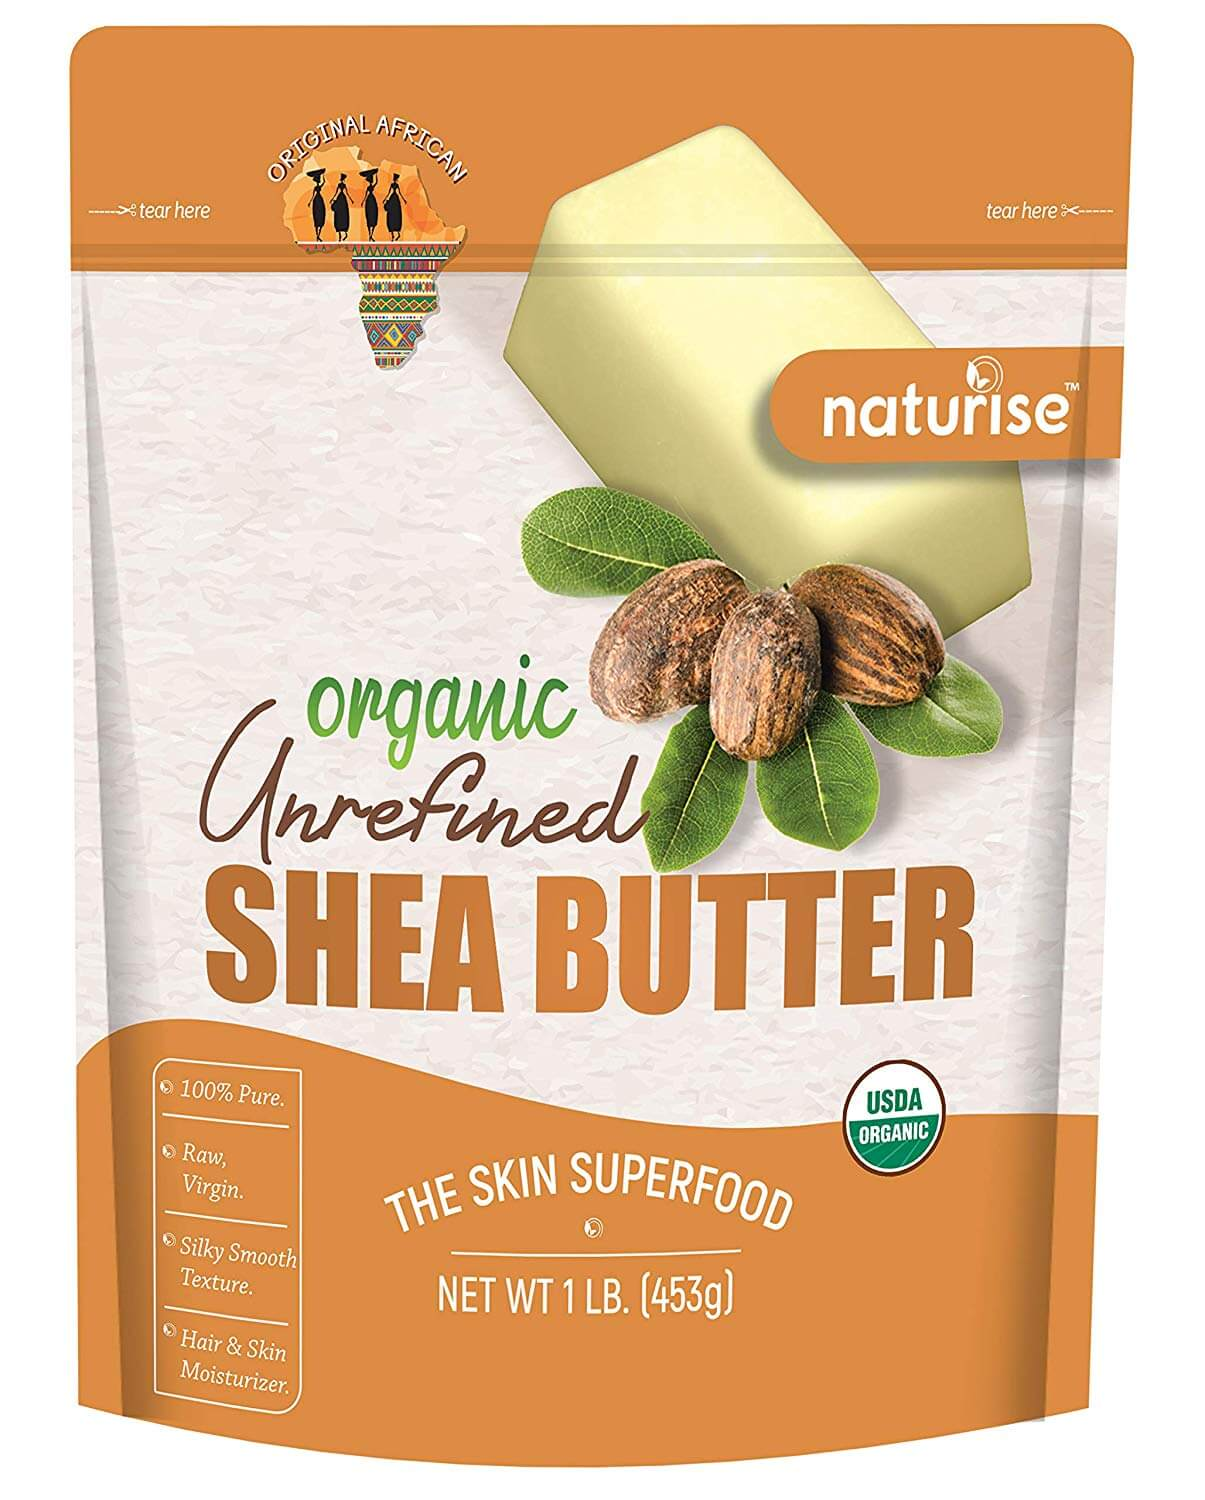 shea butter as one of the best home remedies for dry and frizzy hair